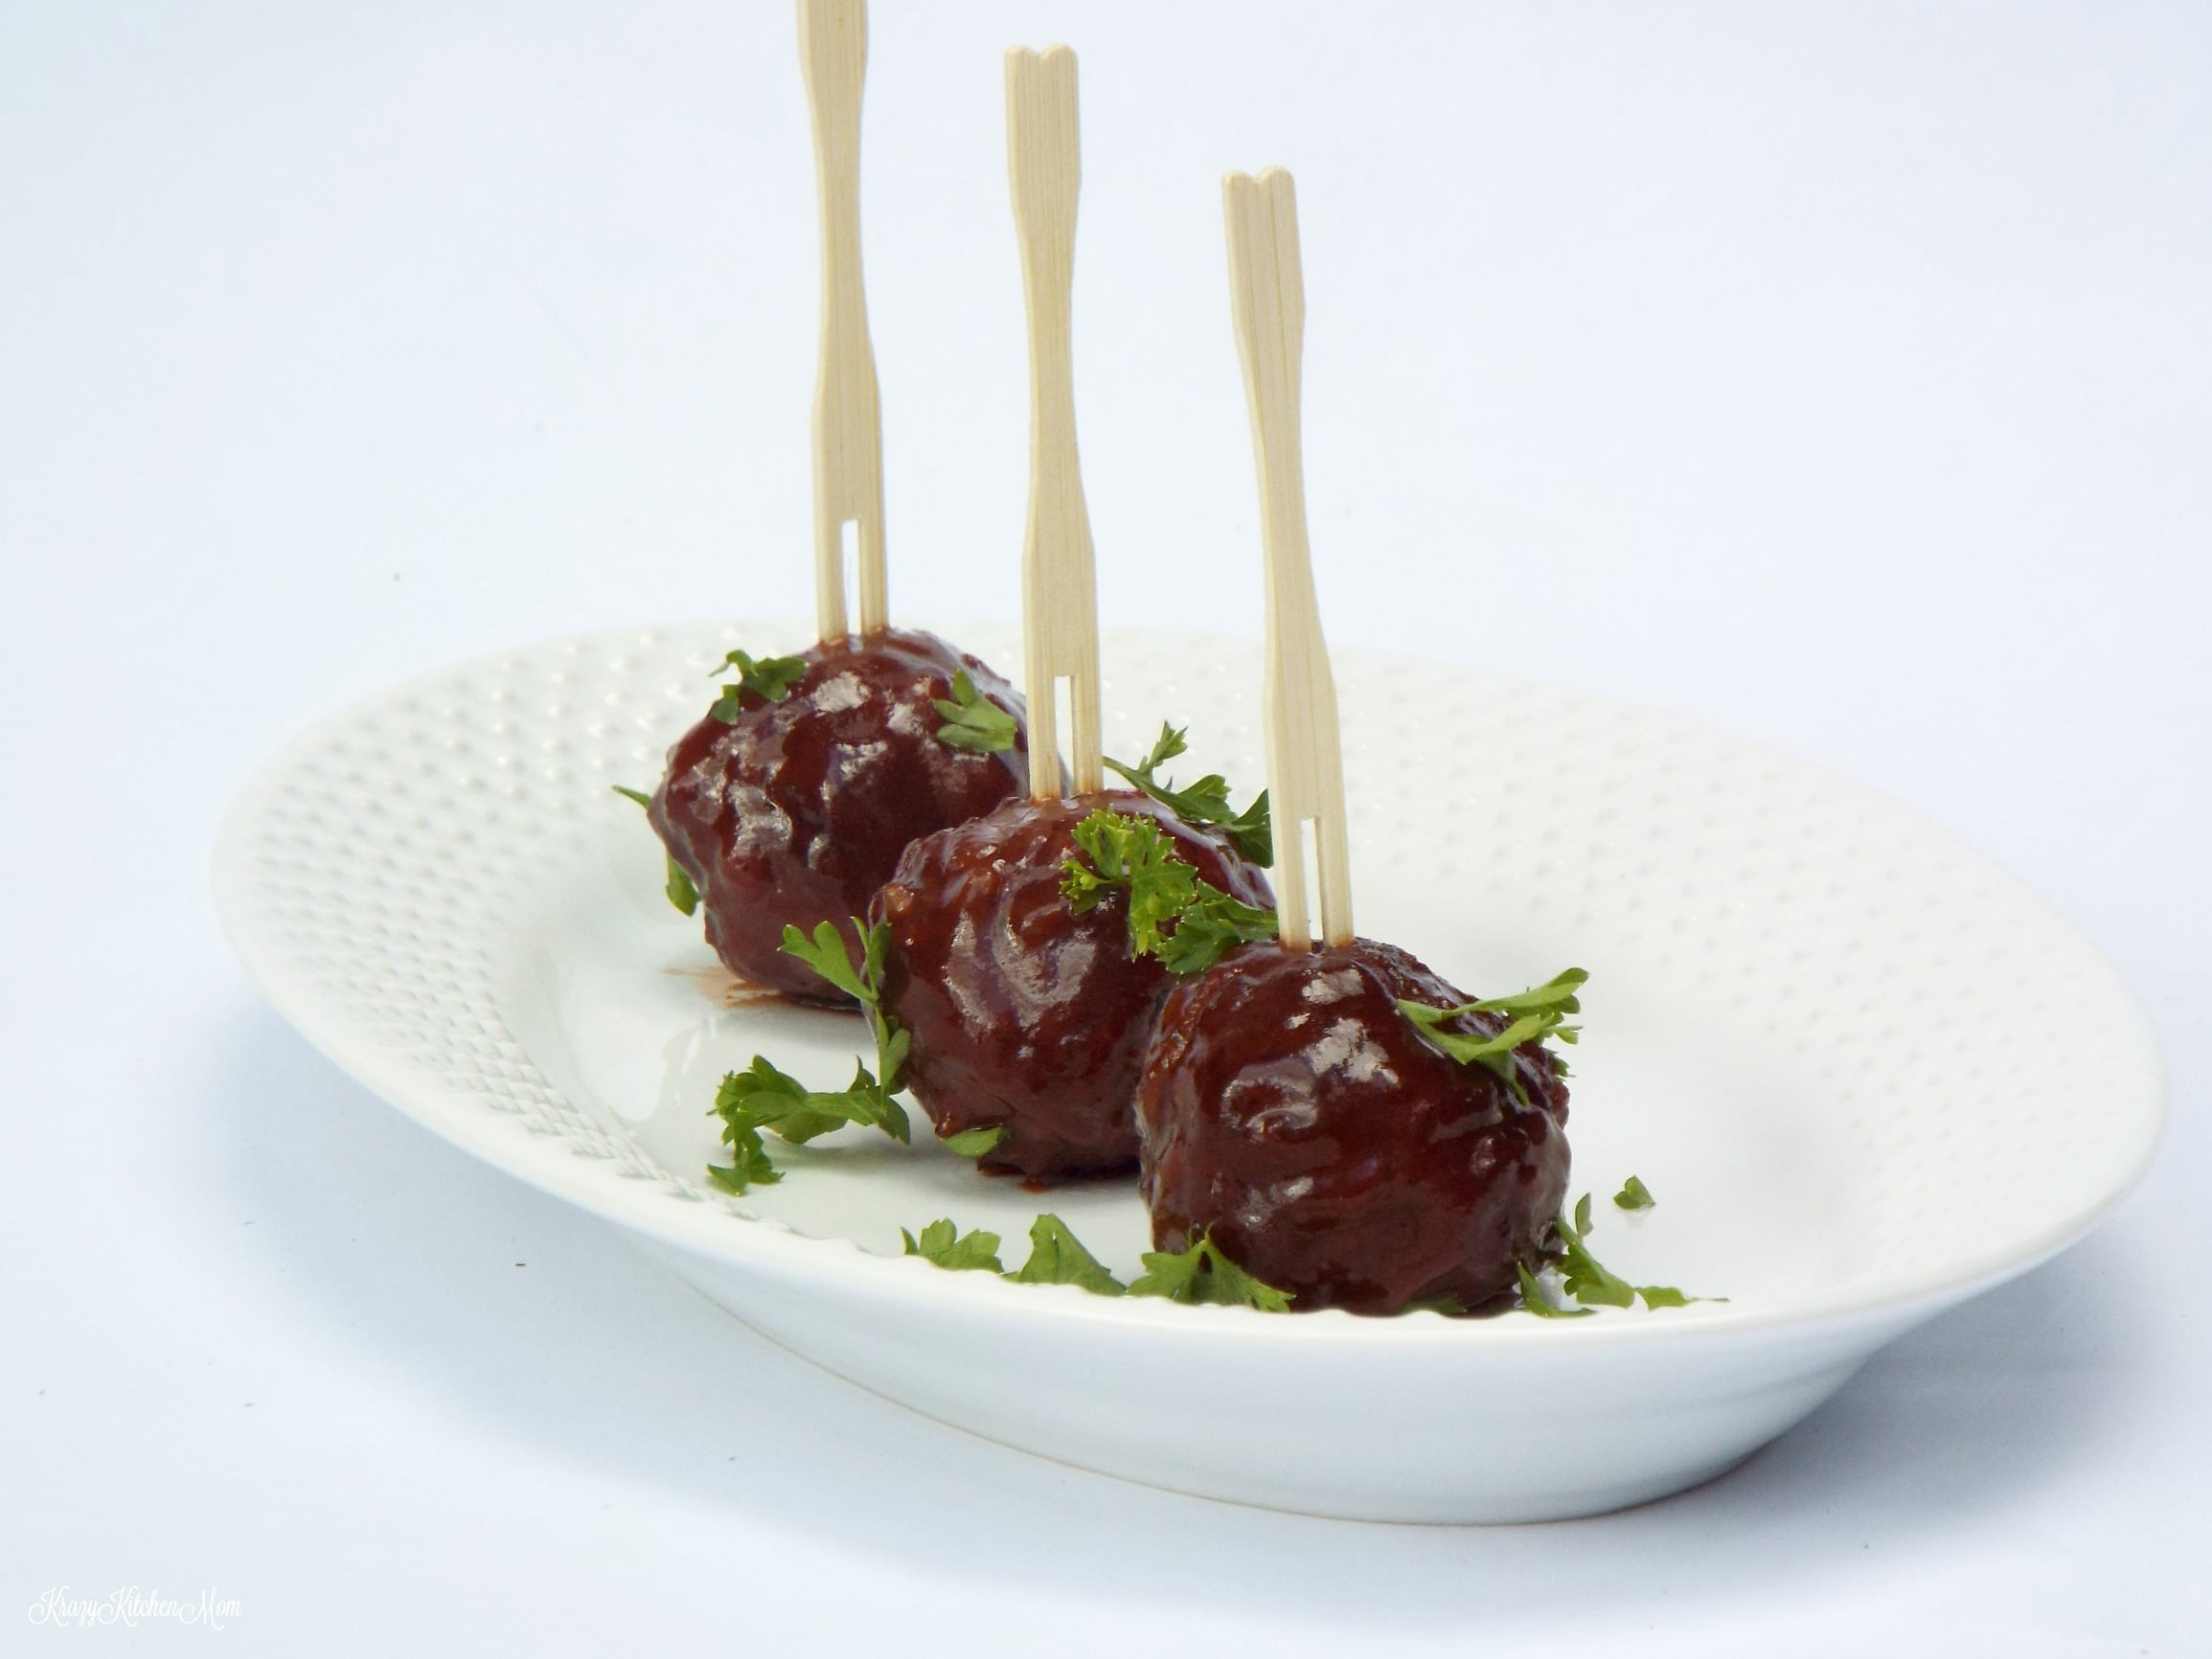 three mini meatballs with skewers on a plate with parsley